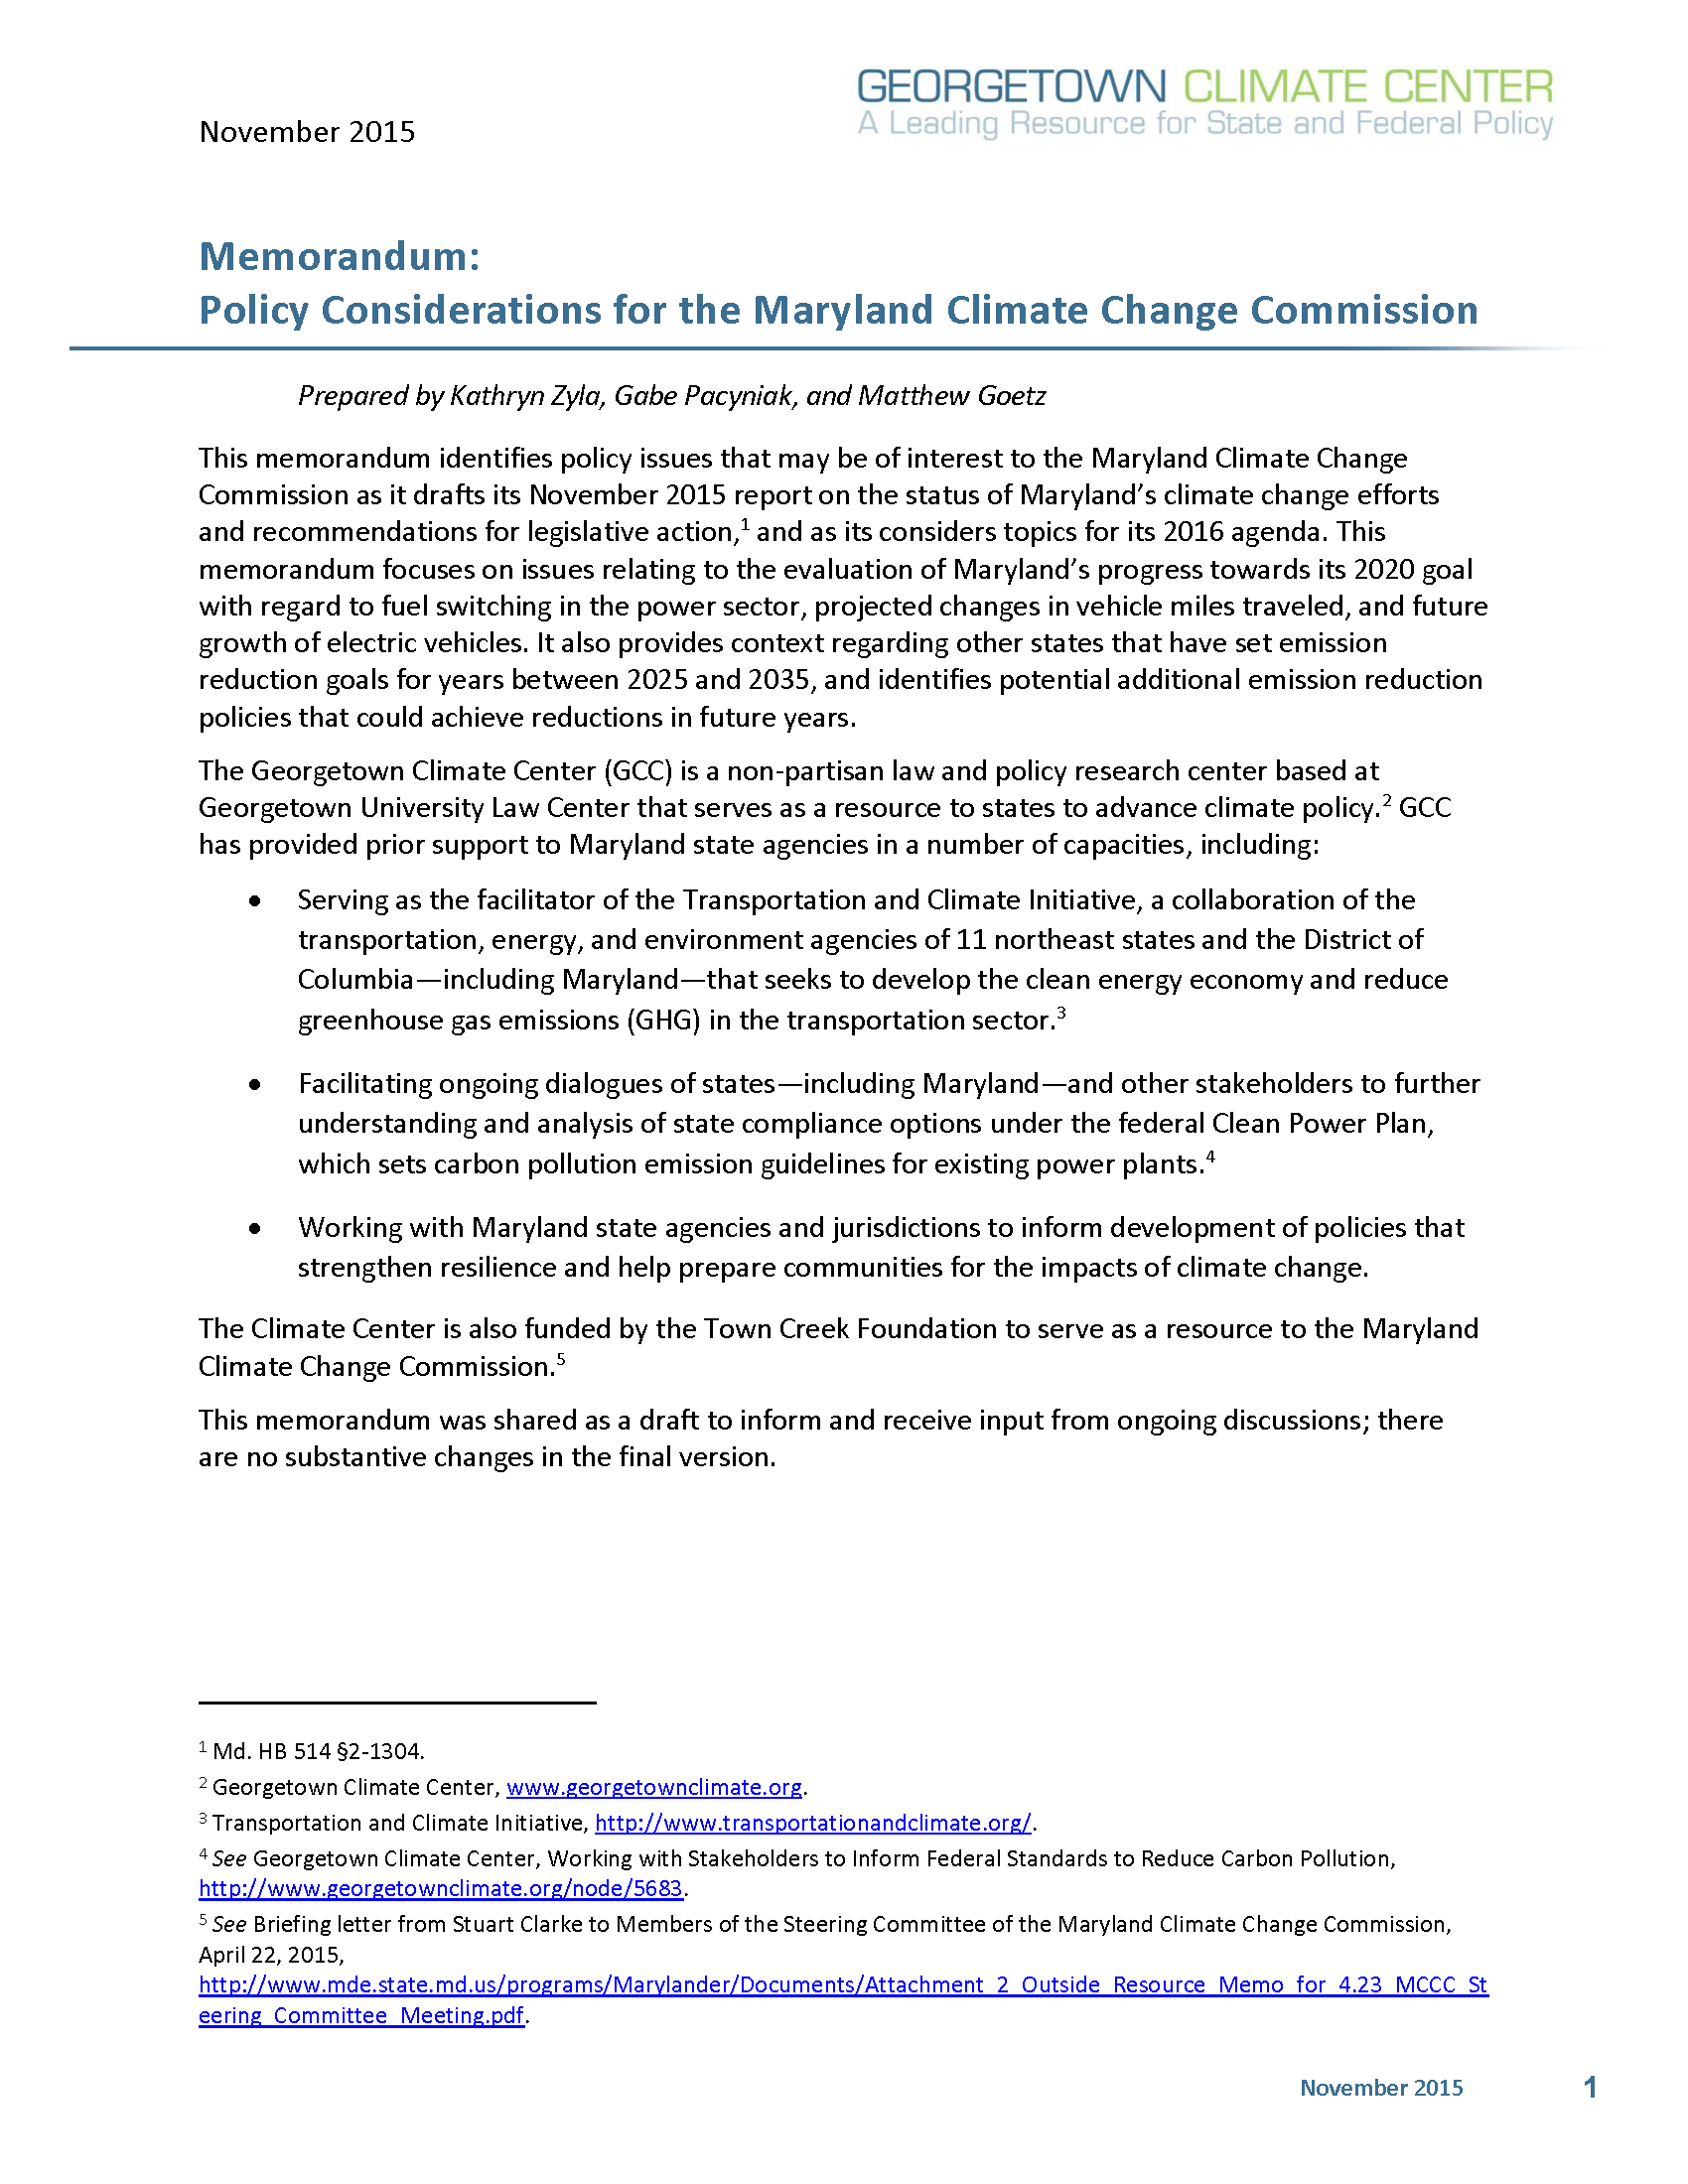 Memorandum: Policy Considerations for the Maryland Climate Change Commission